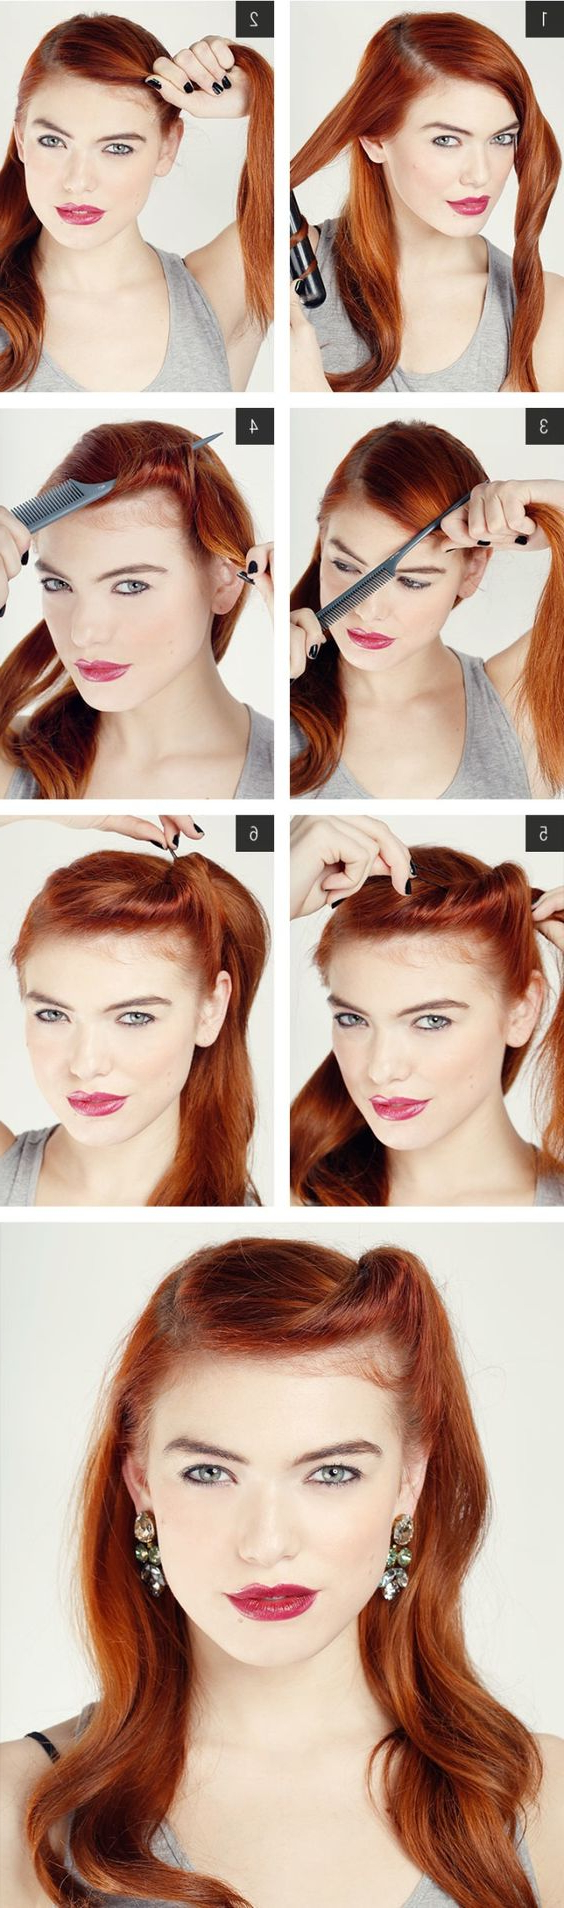 20 Elegant Retro Hairstyles 2018 – Vintage Hairstyles For Women Pertaining To Vintage Hairstyle For Short Hair (View 14 of 25)